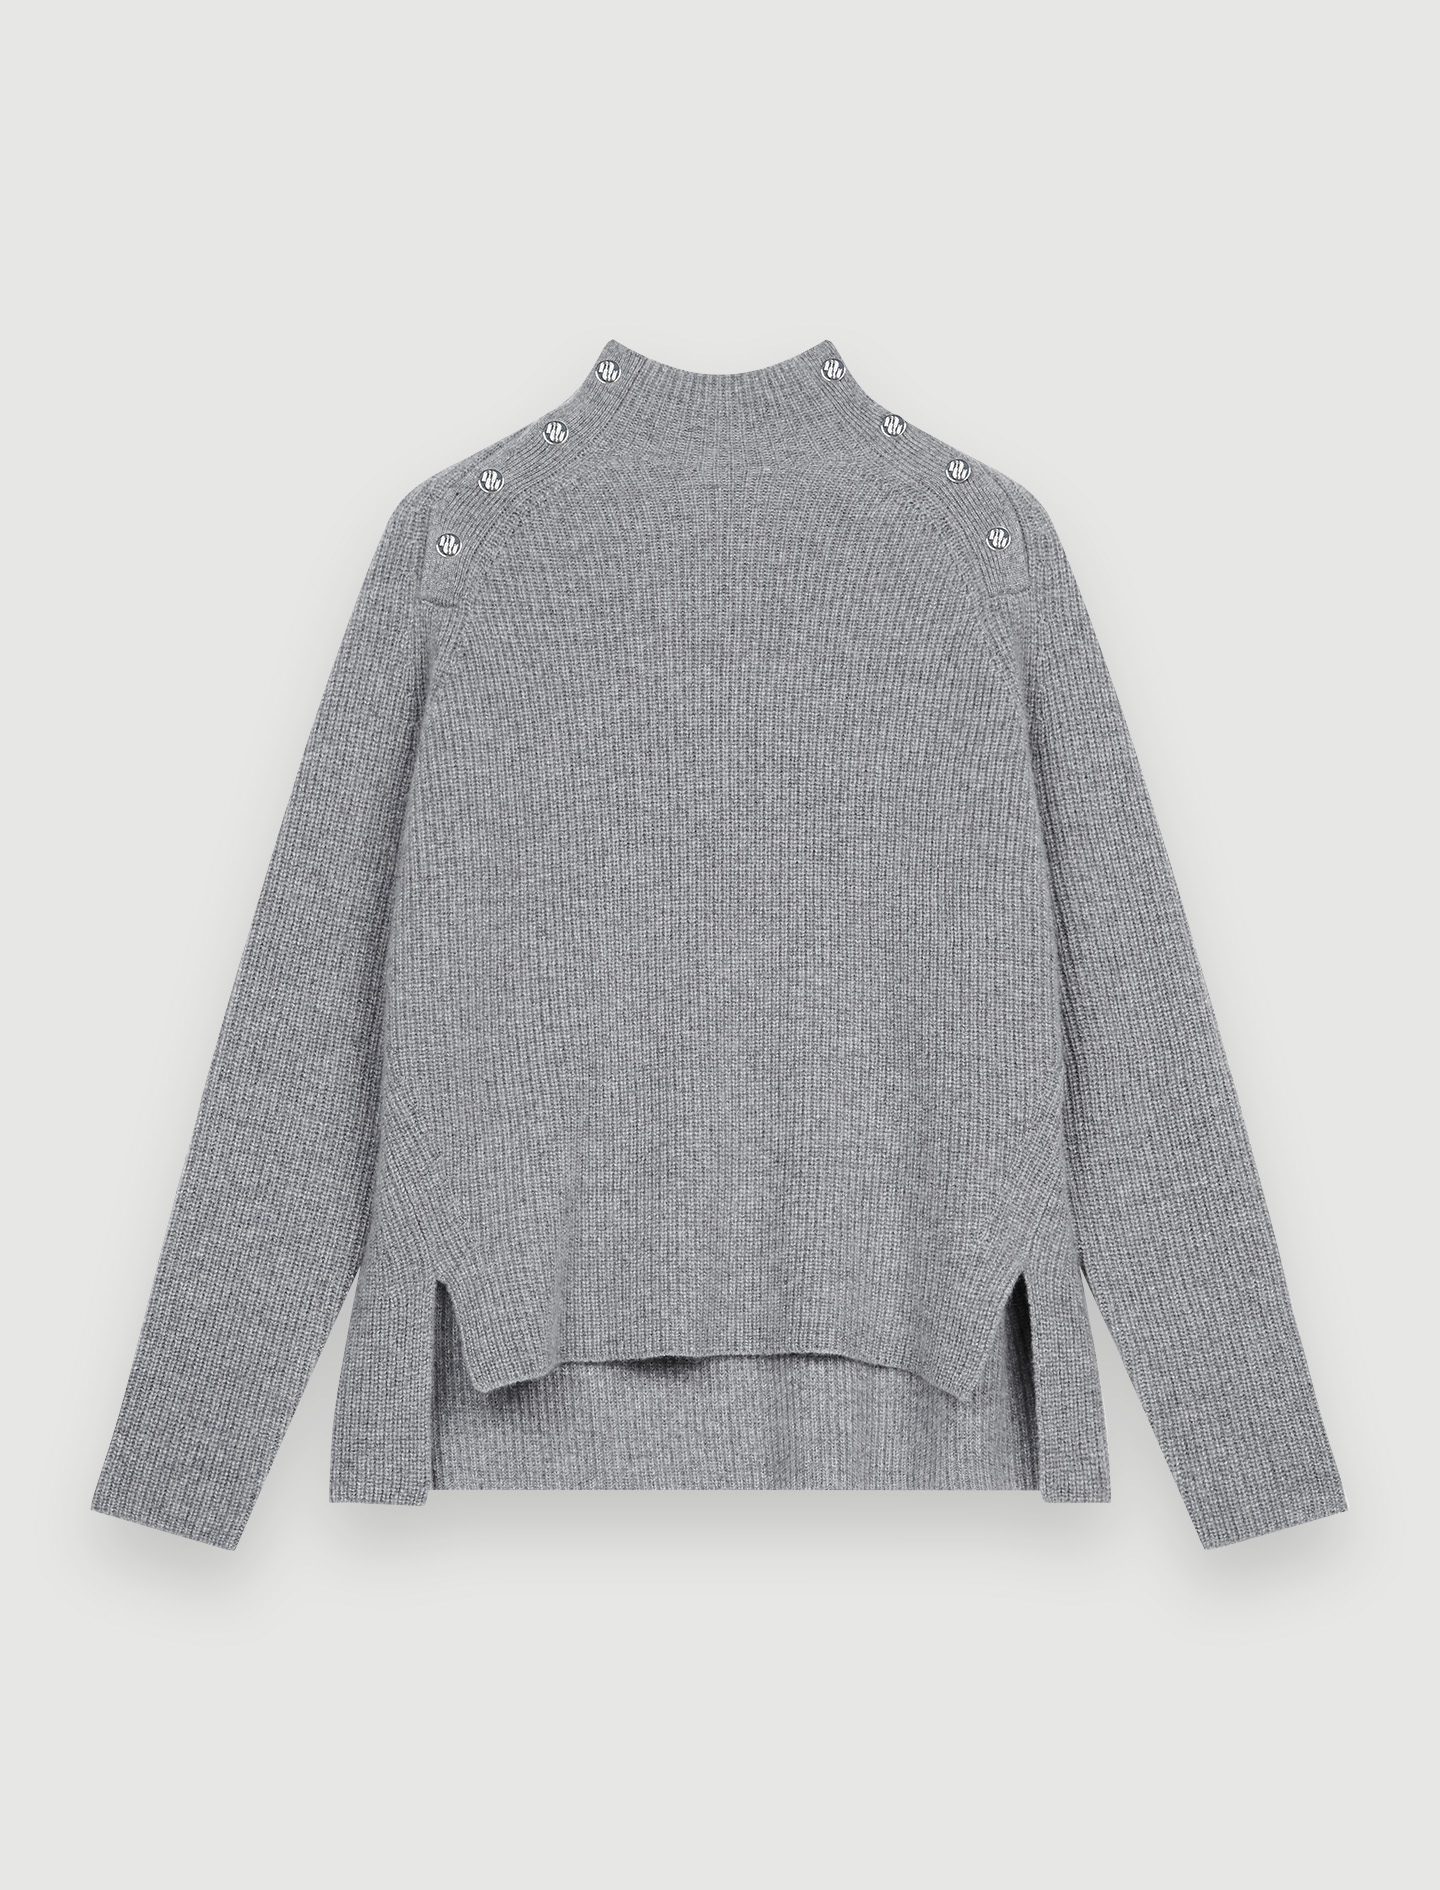 100% cashmere pull over with collar - Grey